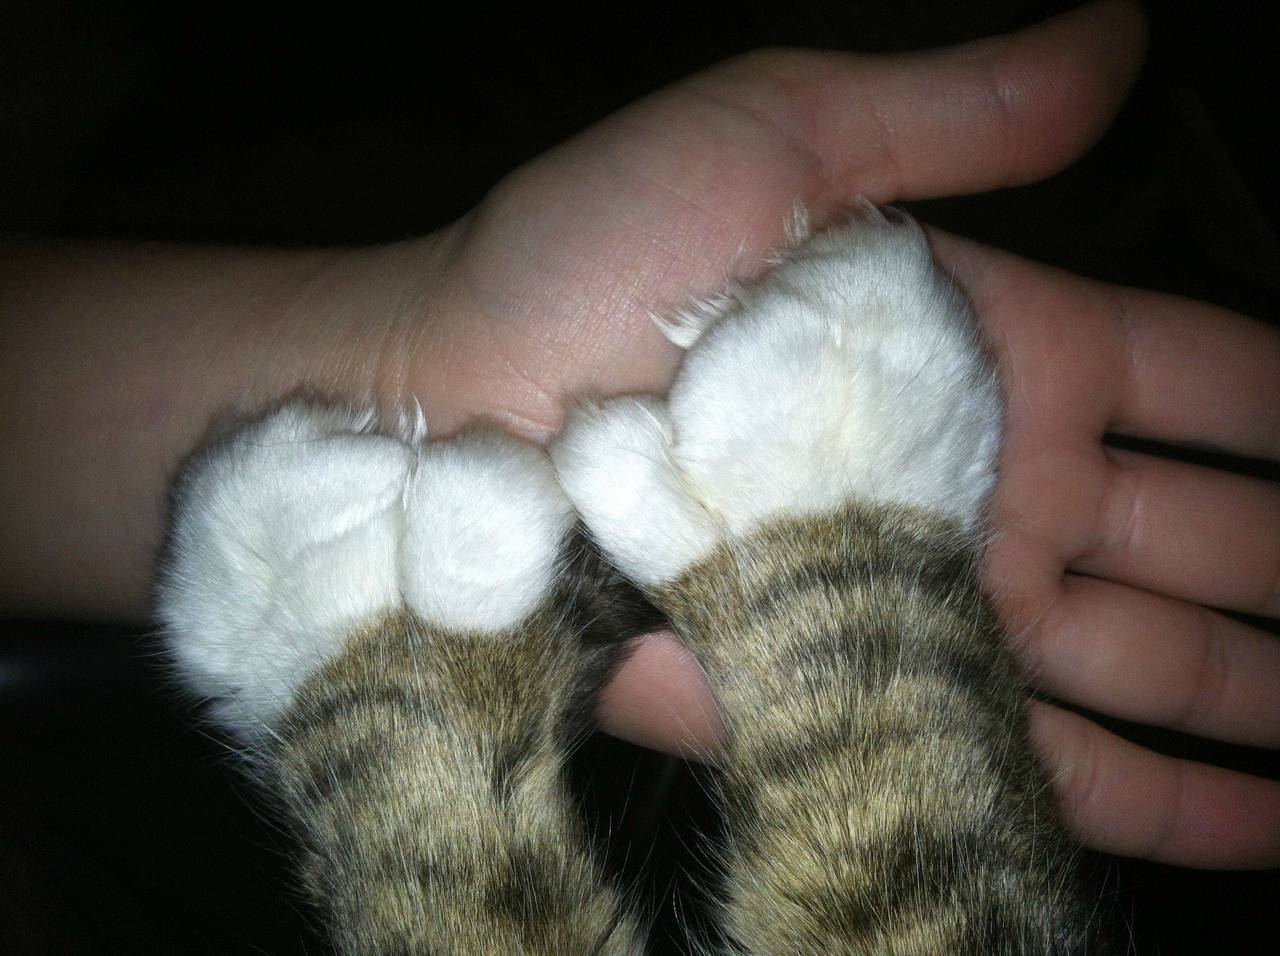 Extra-happy high five with extra-toed cat. Photo via Imgur